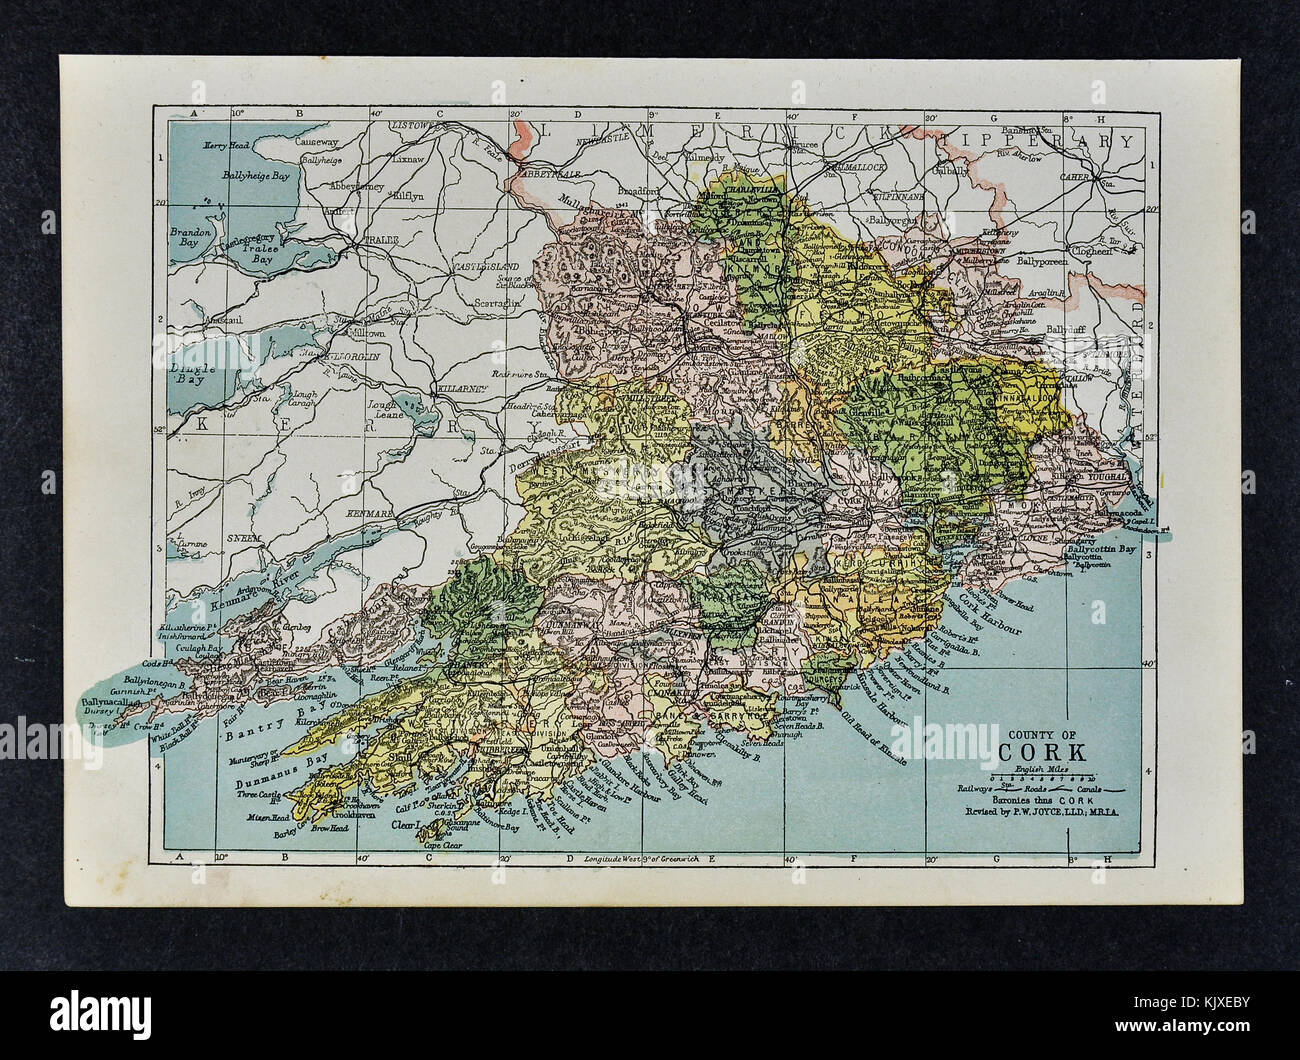 Old map of cork stock photos old map of cork stock images alamy antique ireland map cork county bantry dunmanway youghal skull skibereen kanturk stock image gumiabroncs Choice Image